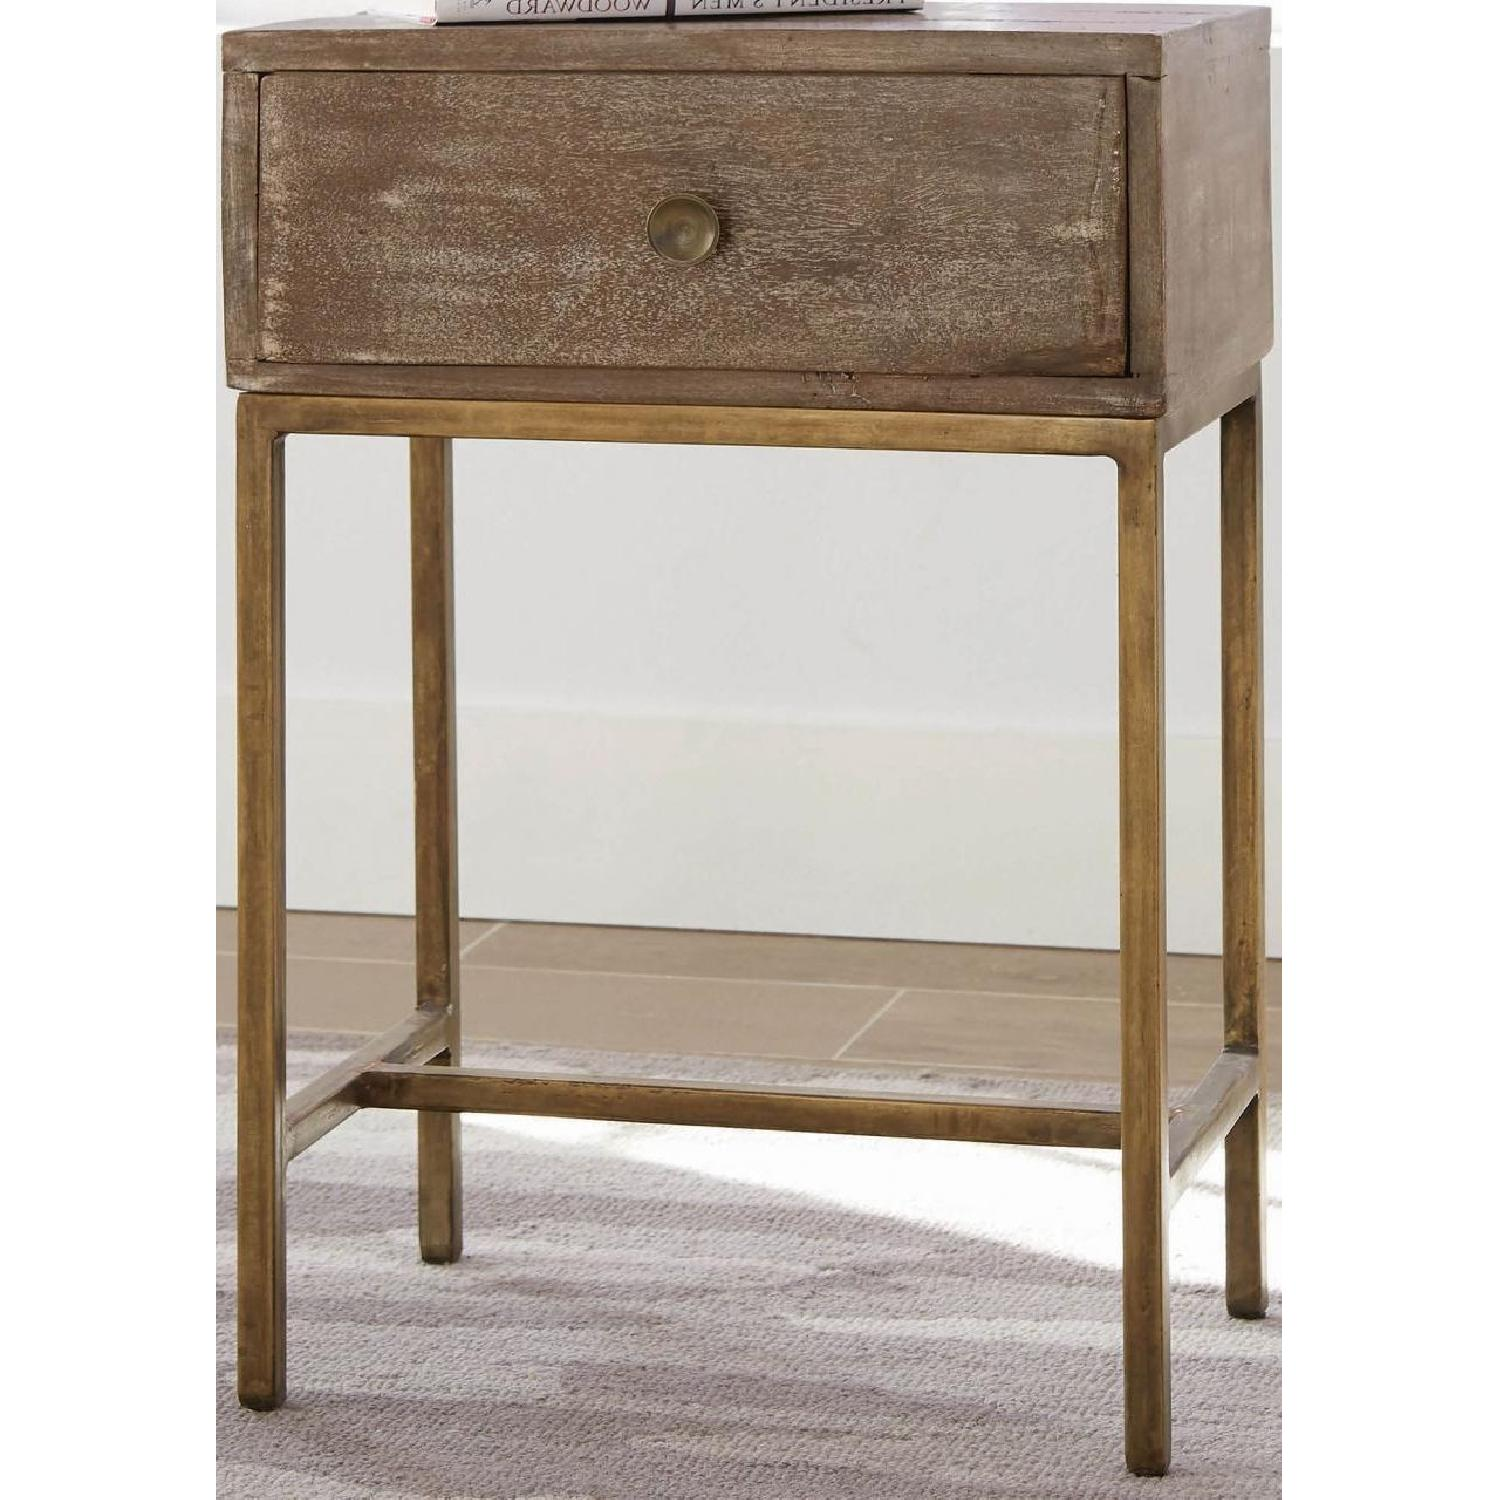 Accent Table w/ Drawer in Weathered Natural & Antique Gold - image-10